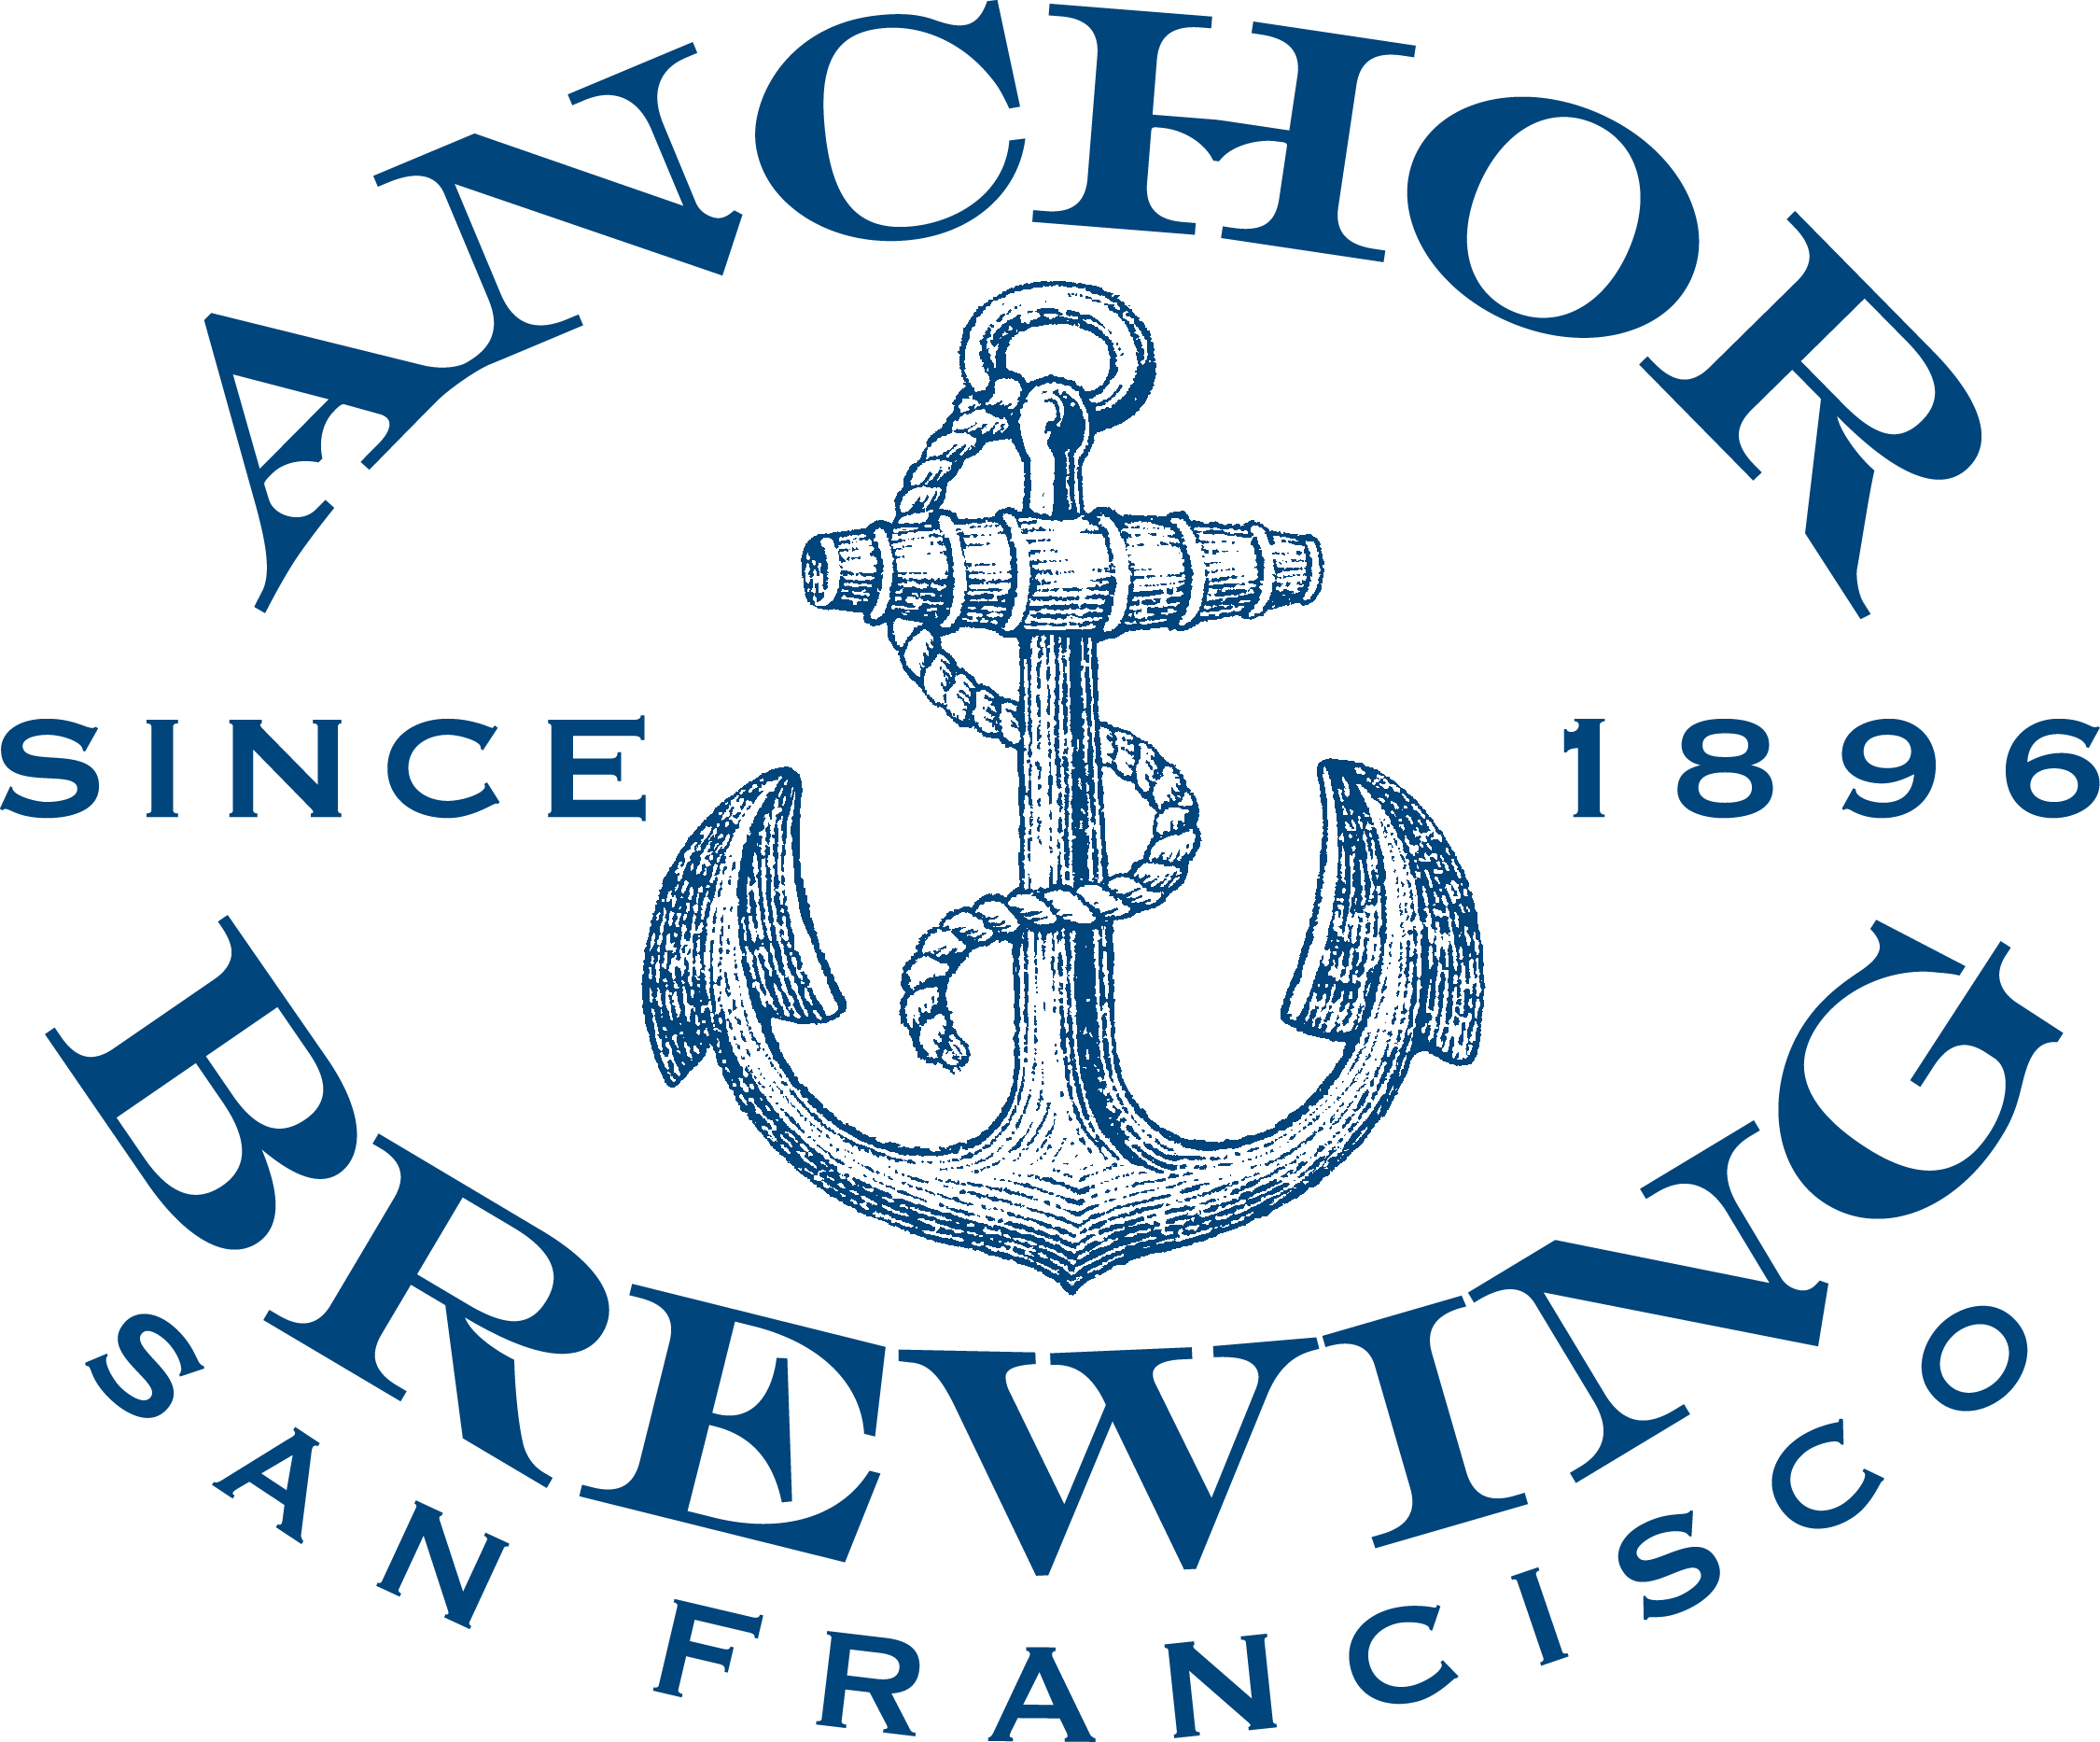 Anchor Brewing Archives  Plumpjack Blog. Letter Target Lettering. Google Play Signs Of Stroke. Scenery Murals. Hat Logo. April 19 Signs Of Stroke. Cities Logo. Month Banners. Single Letter Logo